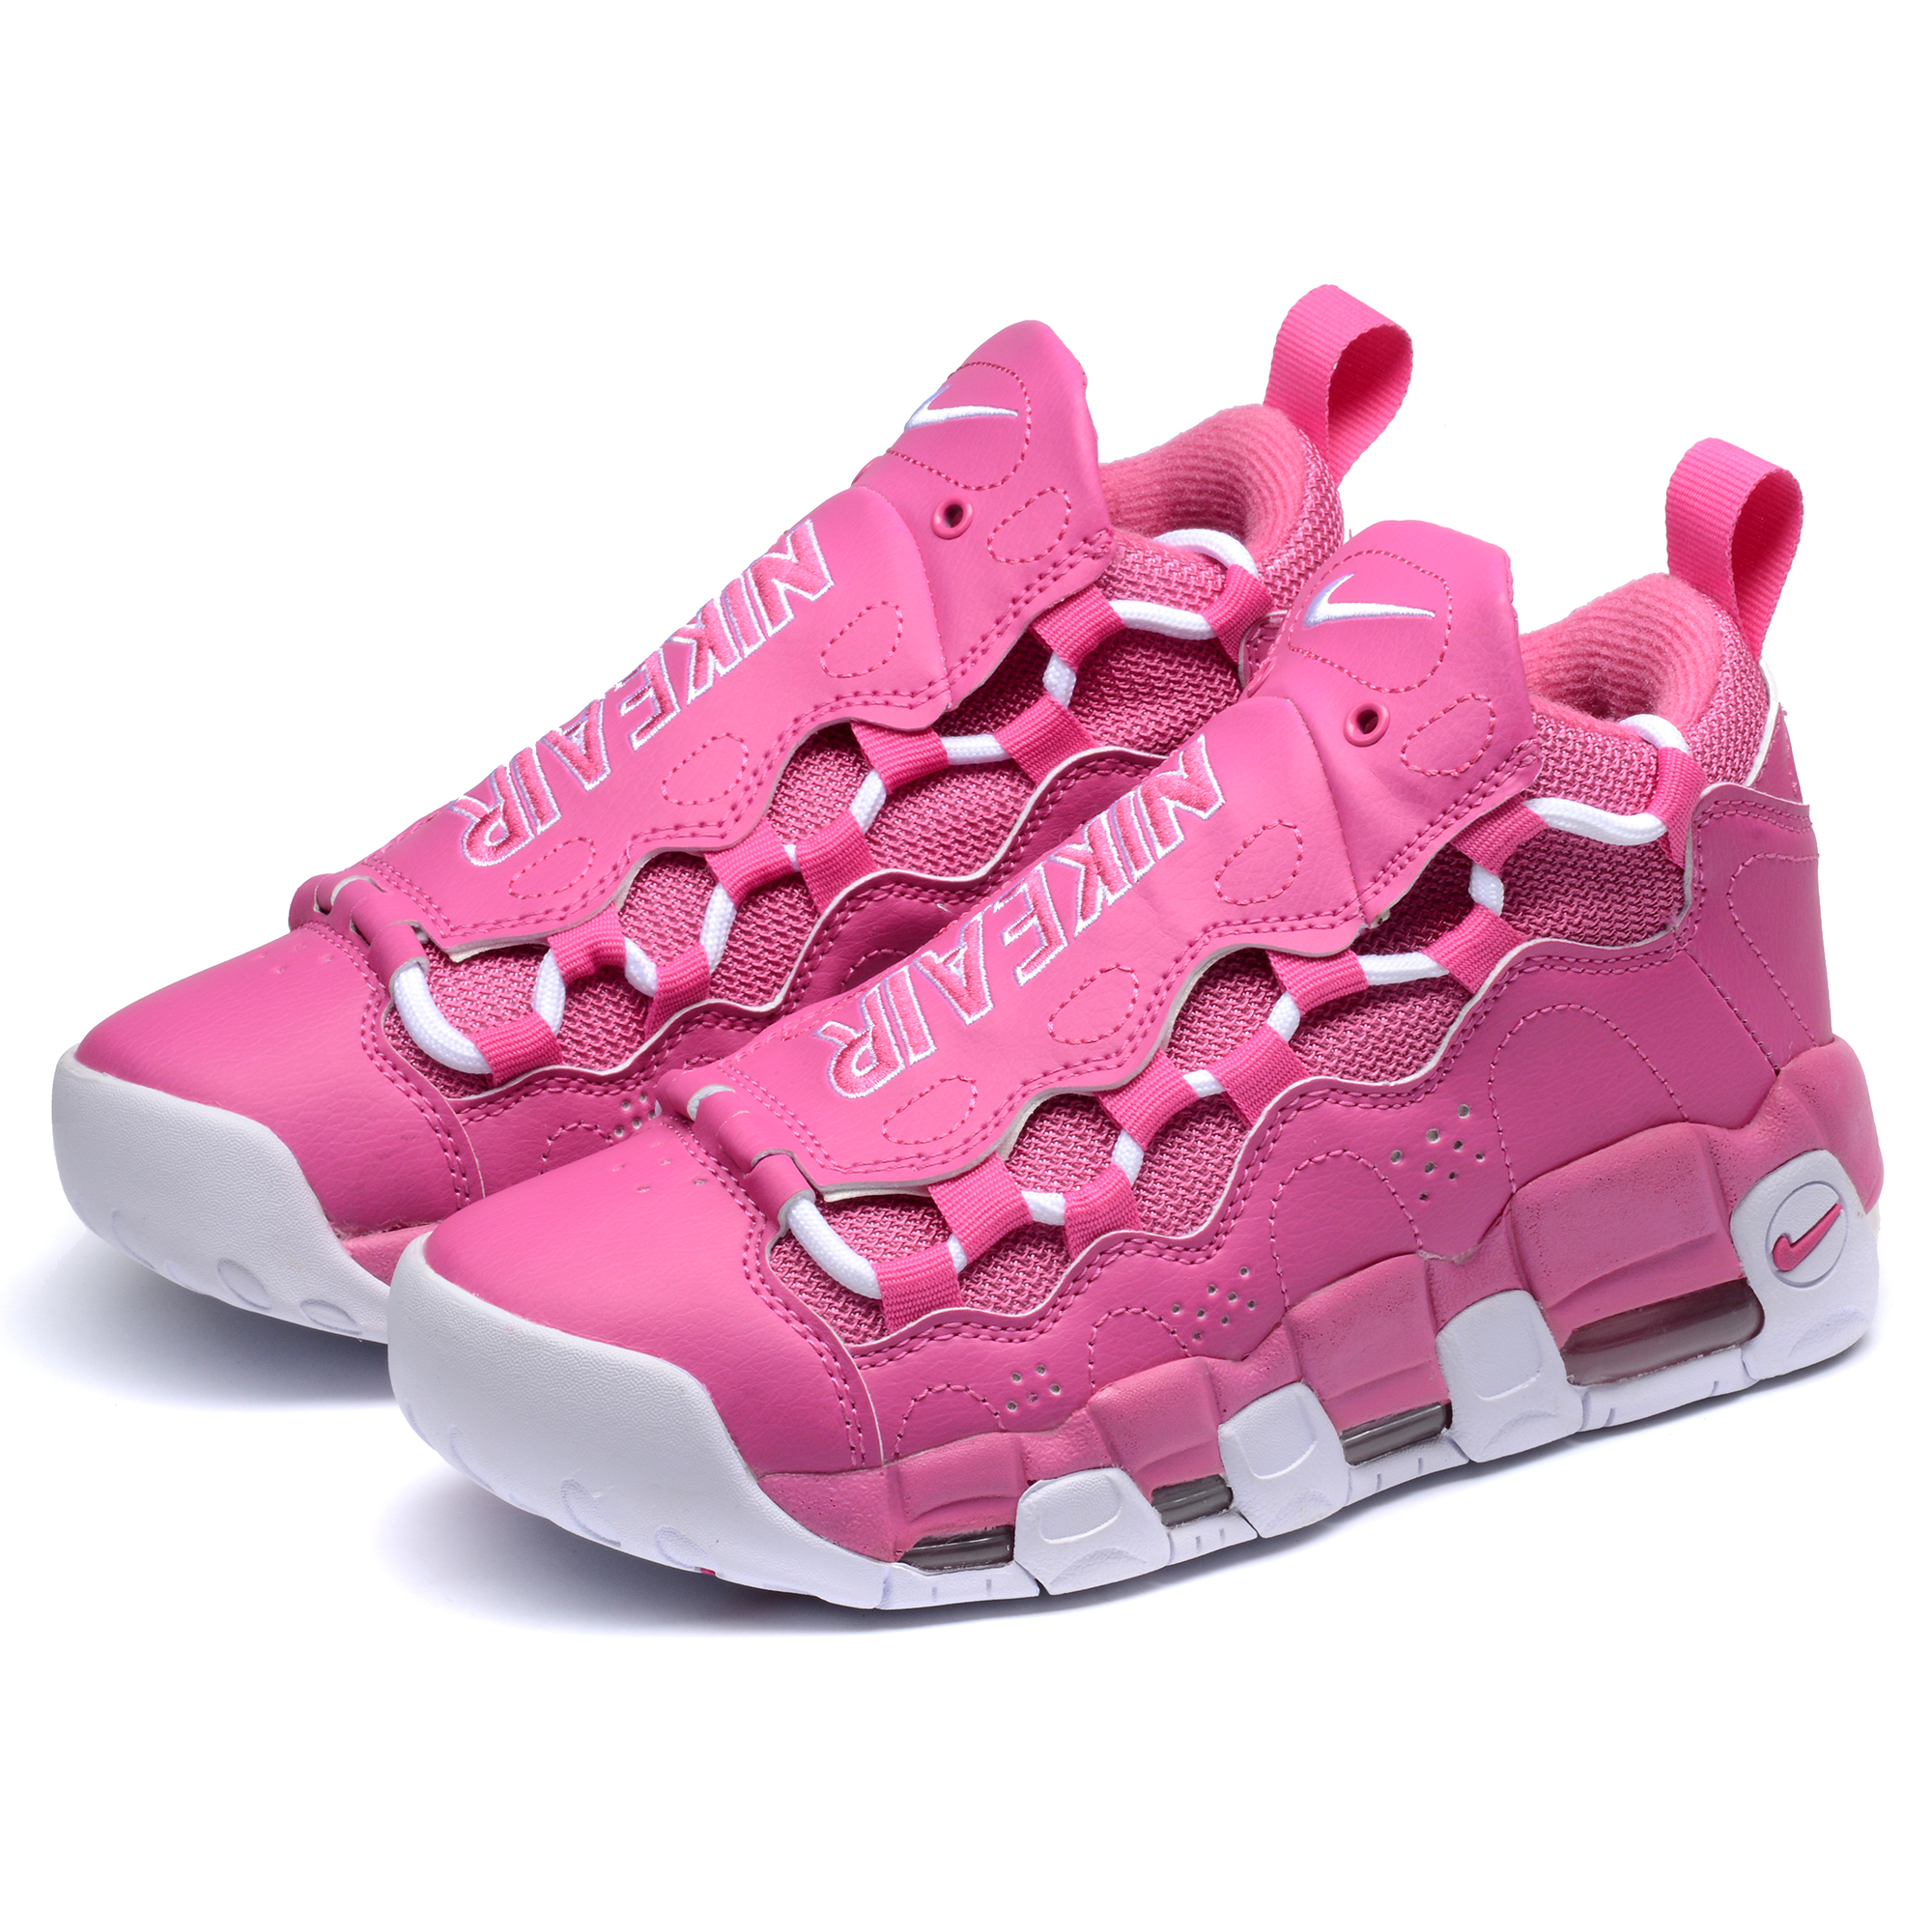 Men Nike Air More Money QS Pink White Shoes